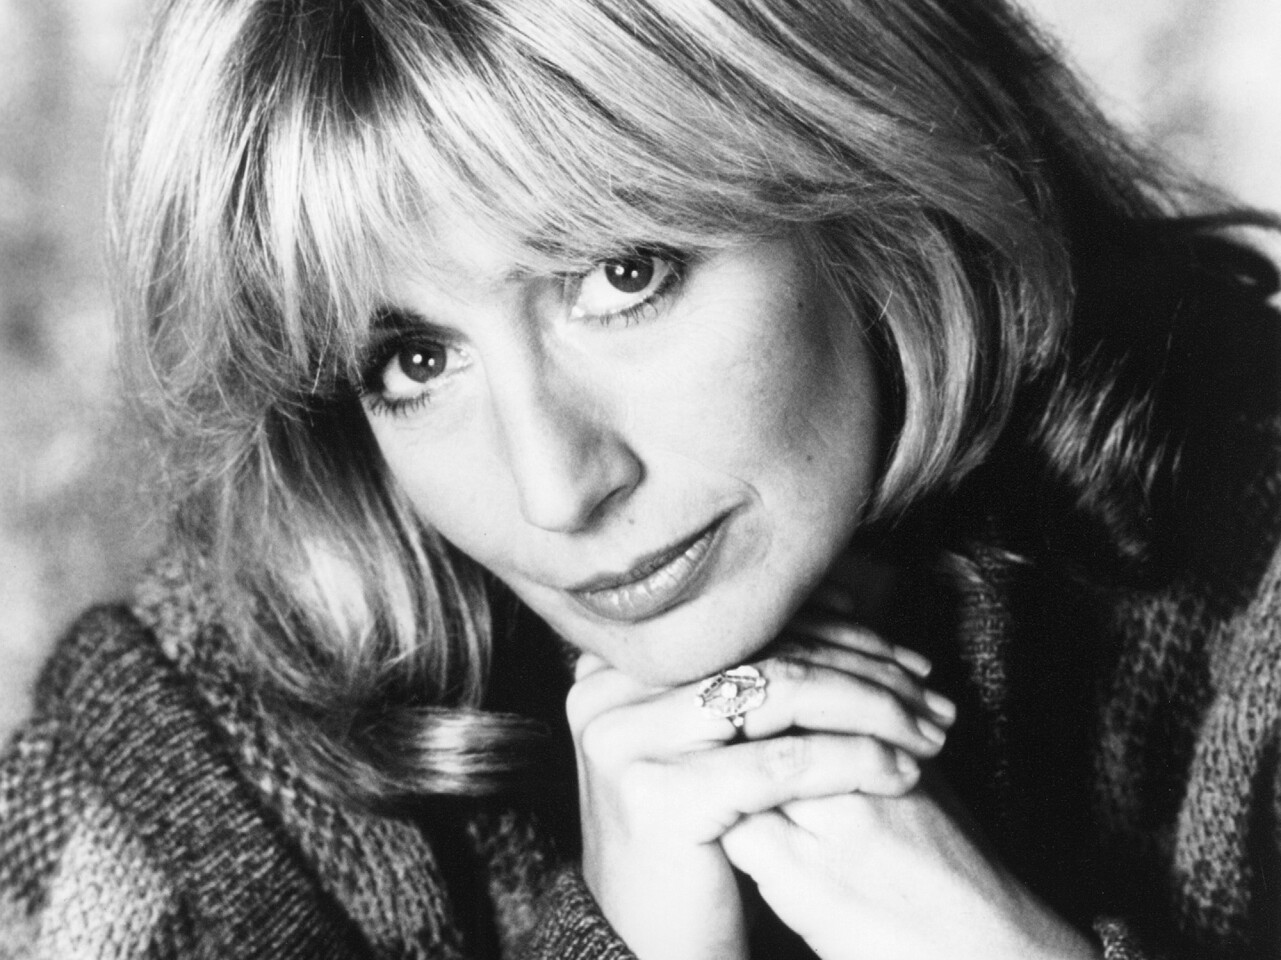 """Penny Marshall, who costarred as a Milwaukee brewery worker in the top-rated 1970s and '80s sitcom """"Laverne & Shirley"""" before becoming a director of hit movies such as """"Big"""" and """"A League of Their Own,"""" has died. She was 75."""